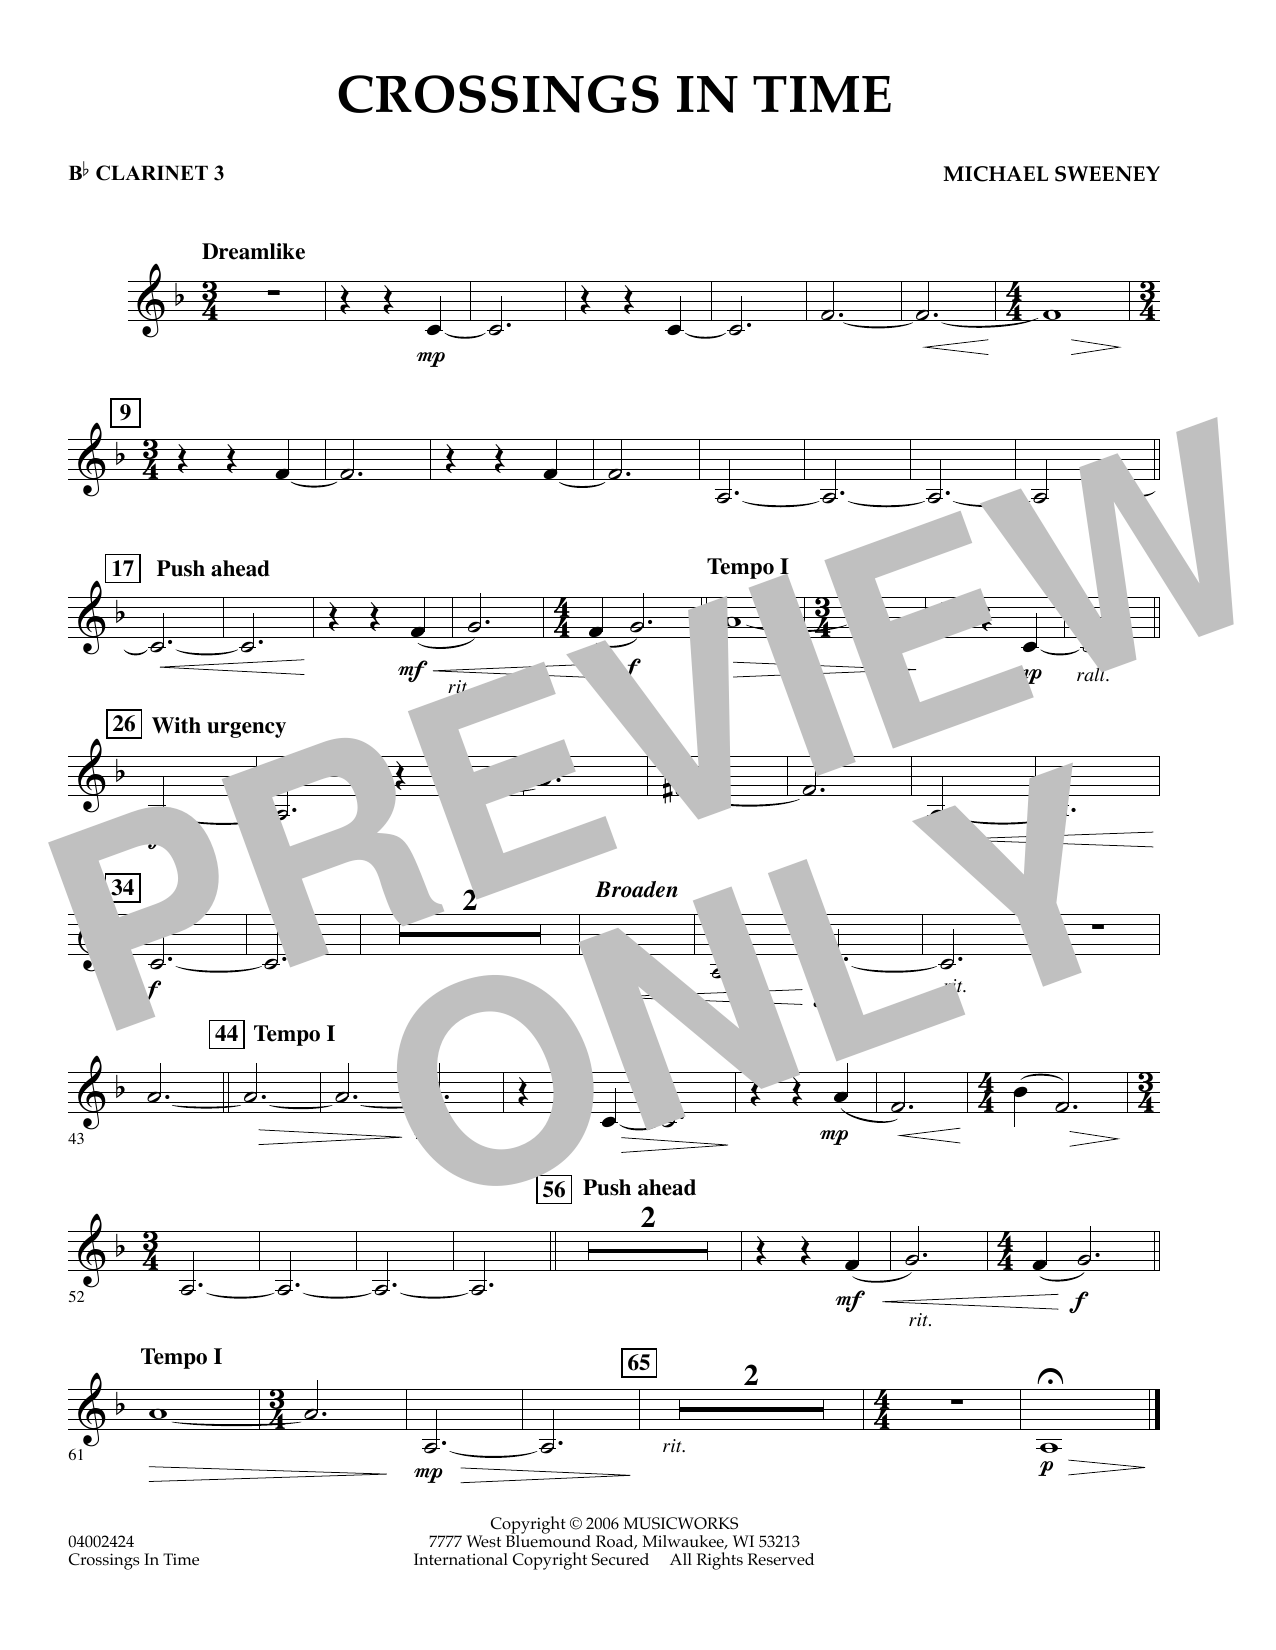 Michael Sweeney Crossings In Time - Bb Clarinet 3 sheet music notes and chords. Download Printable PDF.